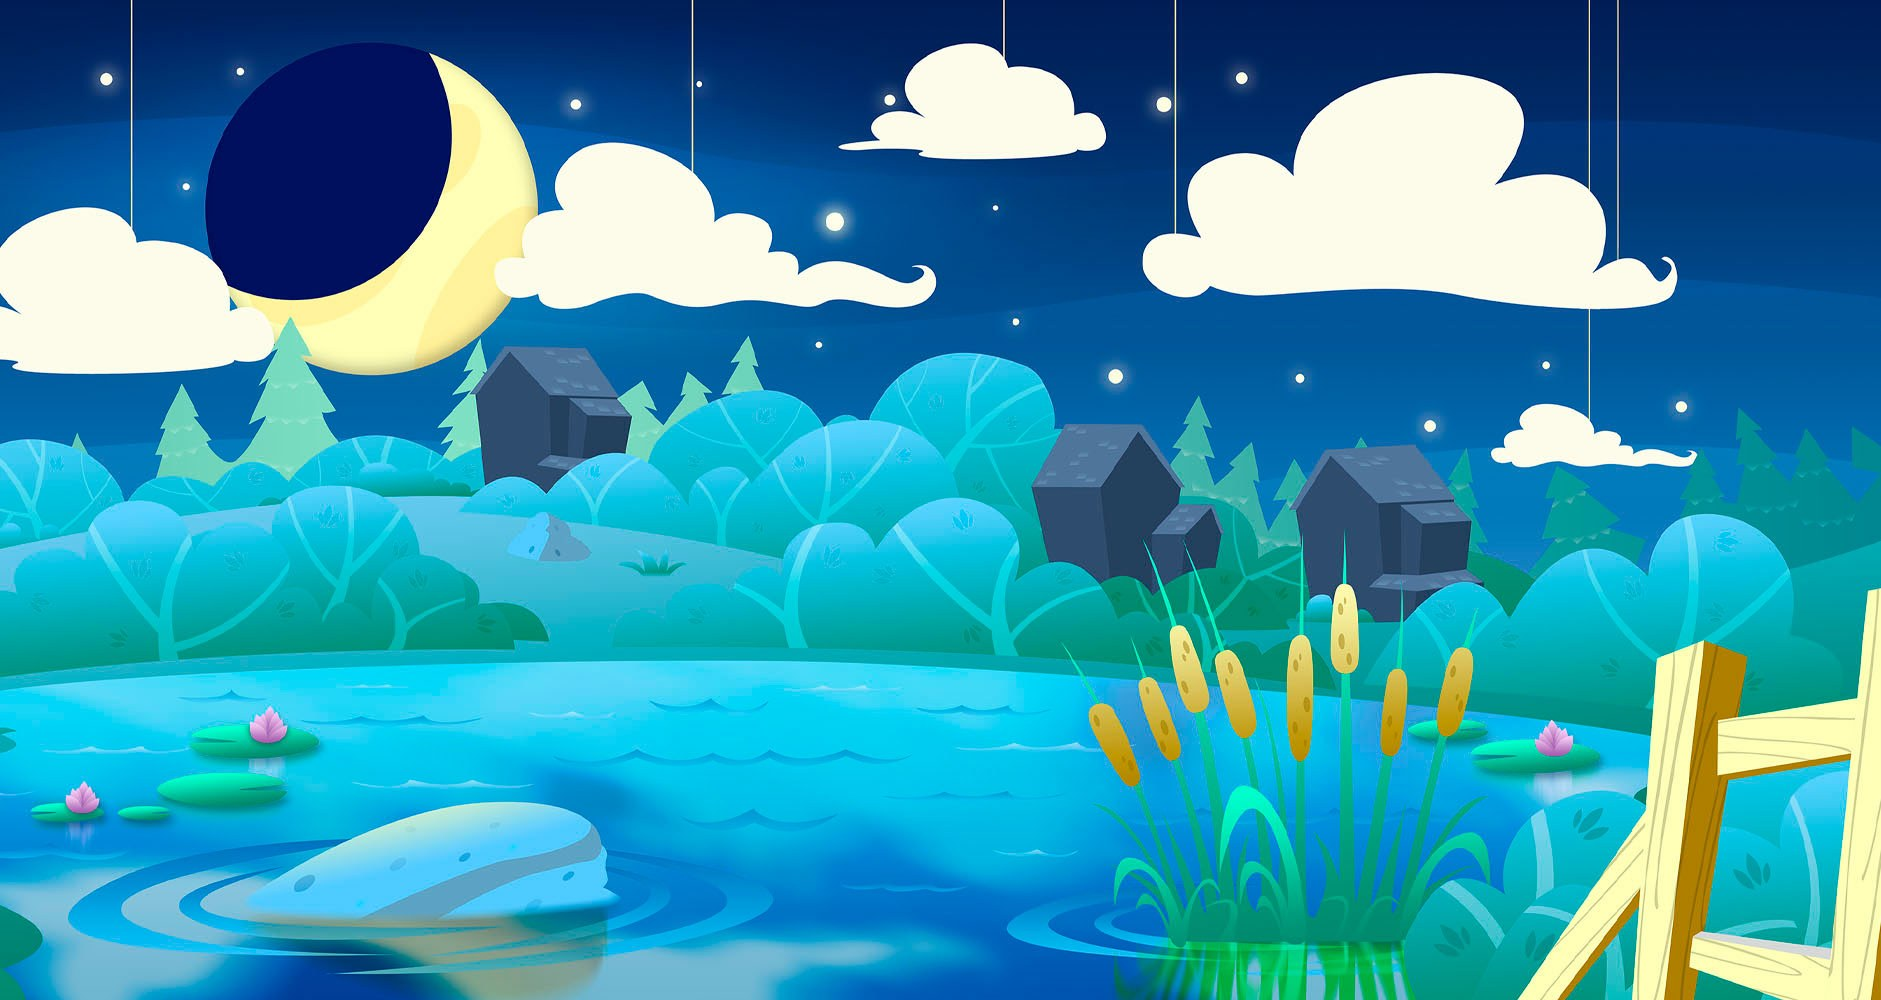 Modern Calico Countryside at Night Concept Wall Art